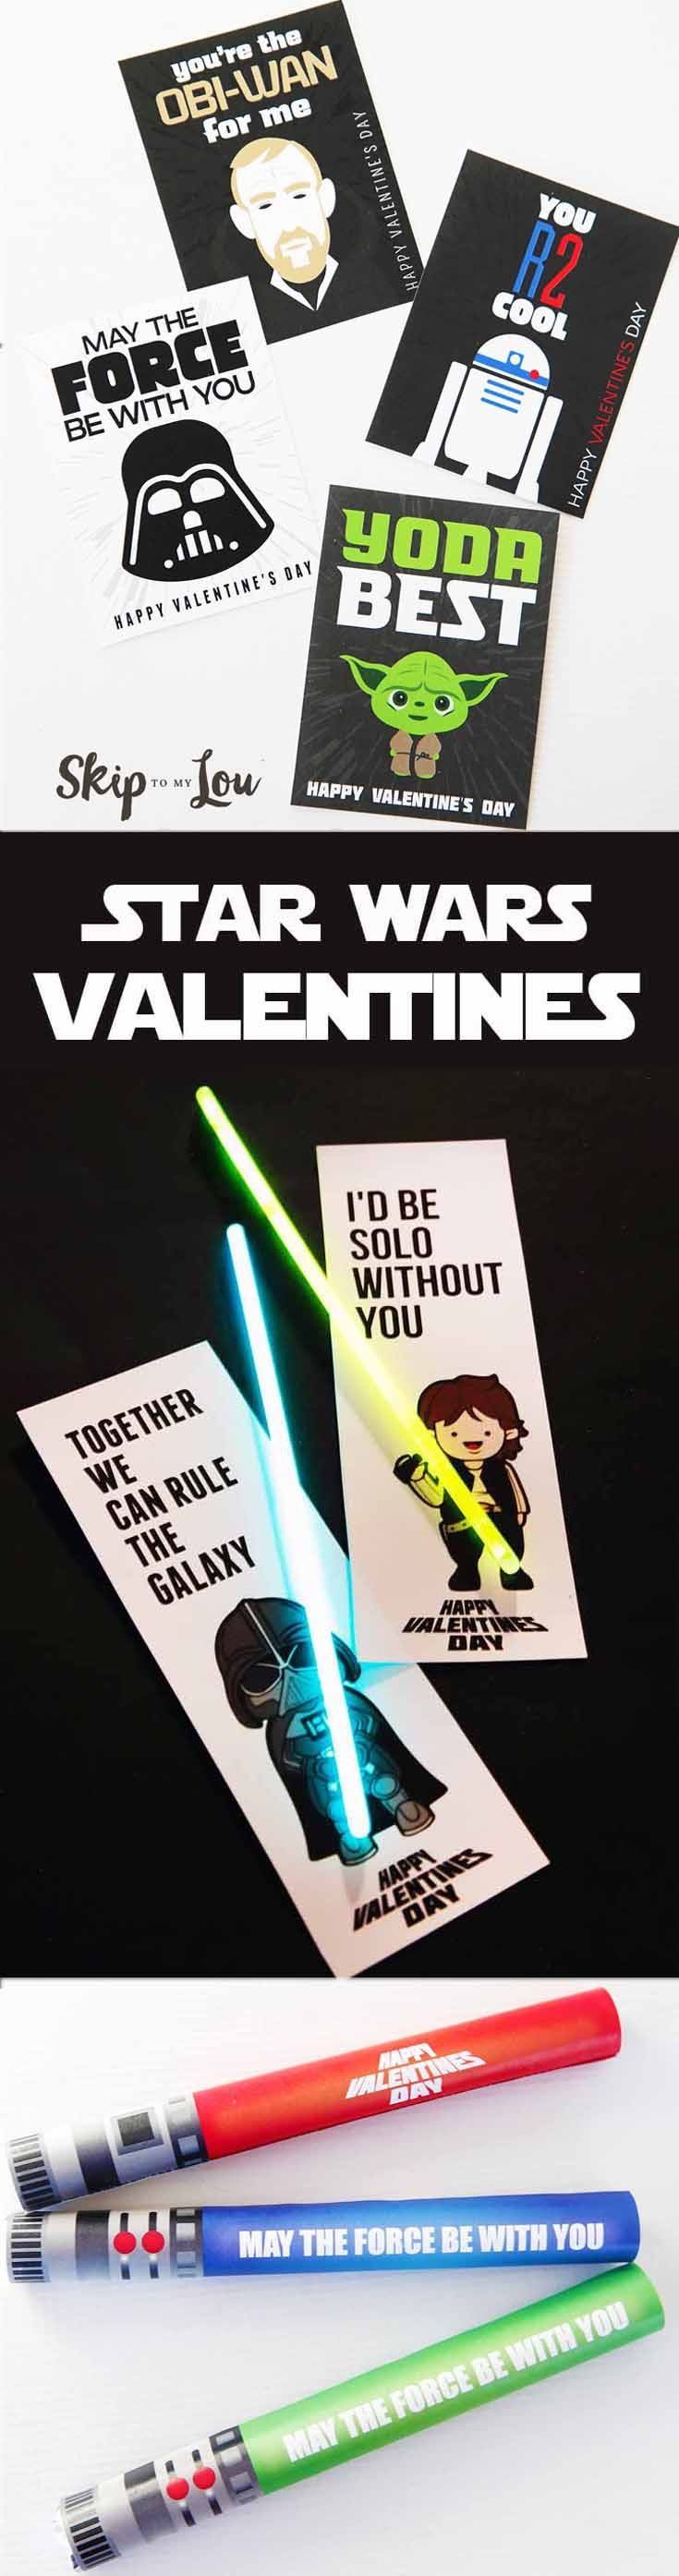 Star Wars valentines! Free to print at home for a Valentine's Day class party. #printable #valentine #valentinesday #starwars